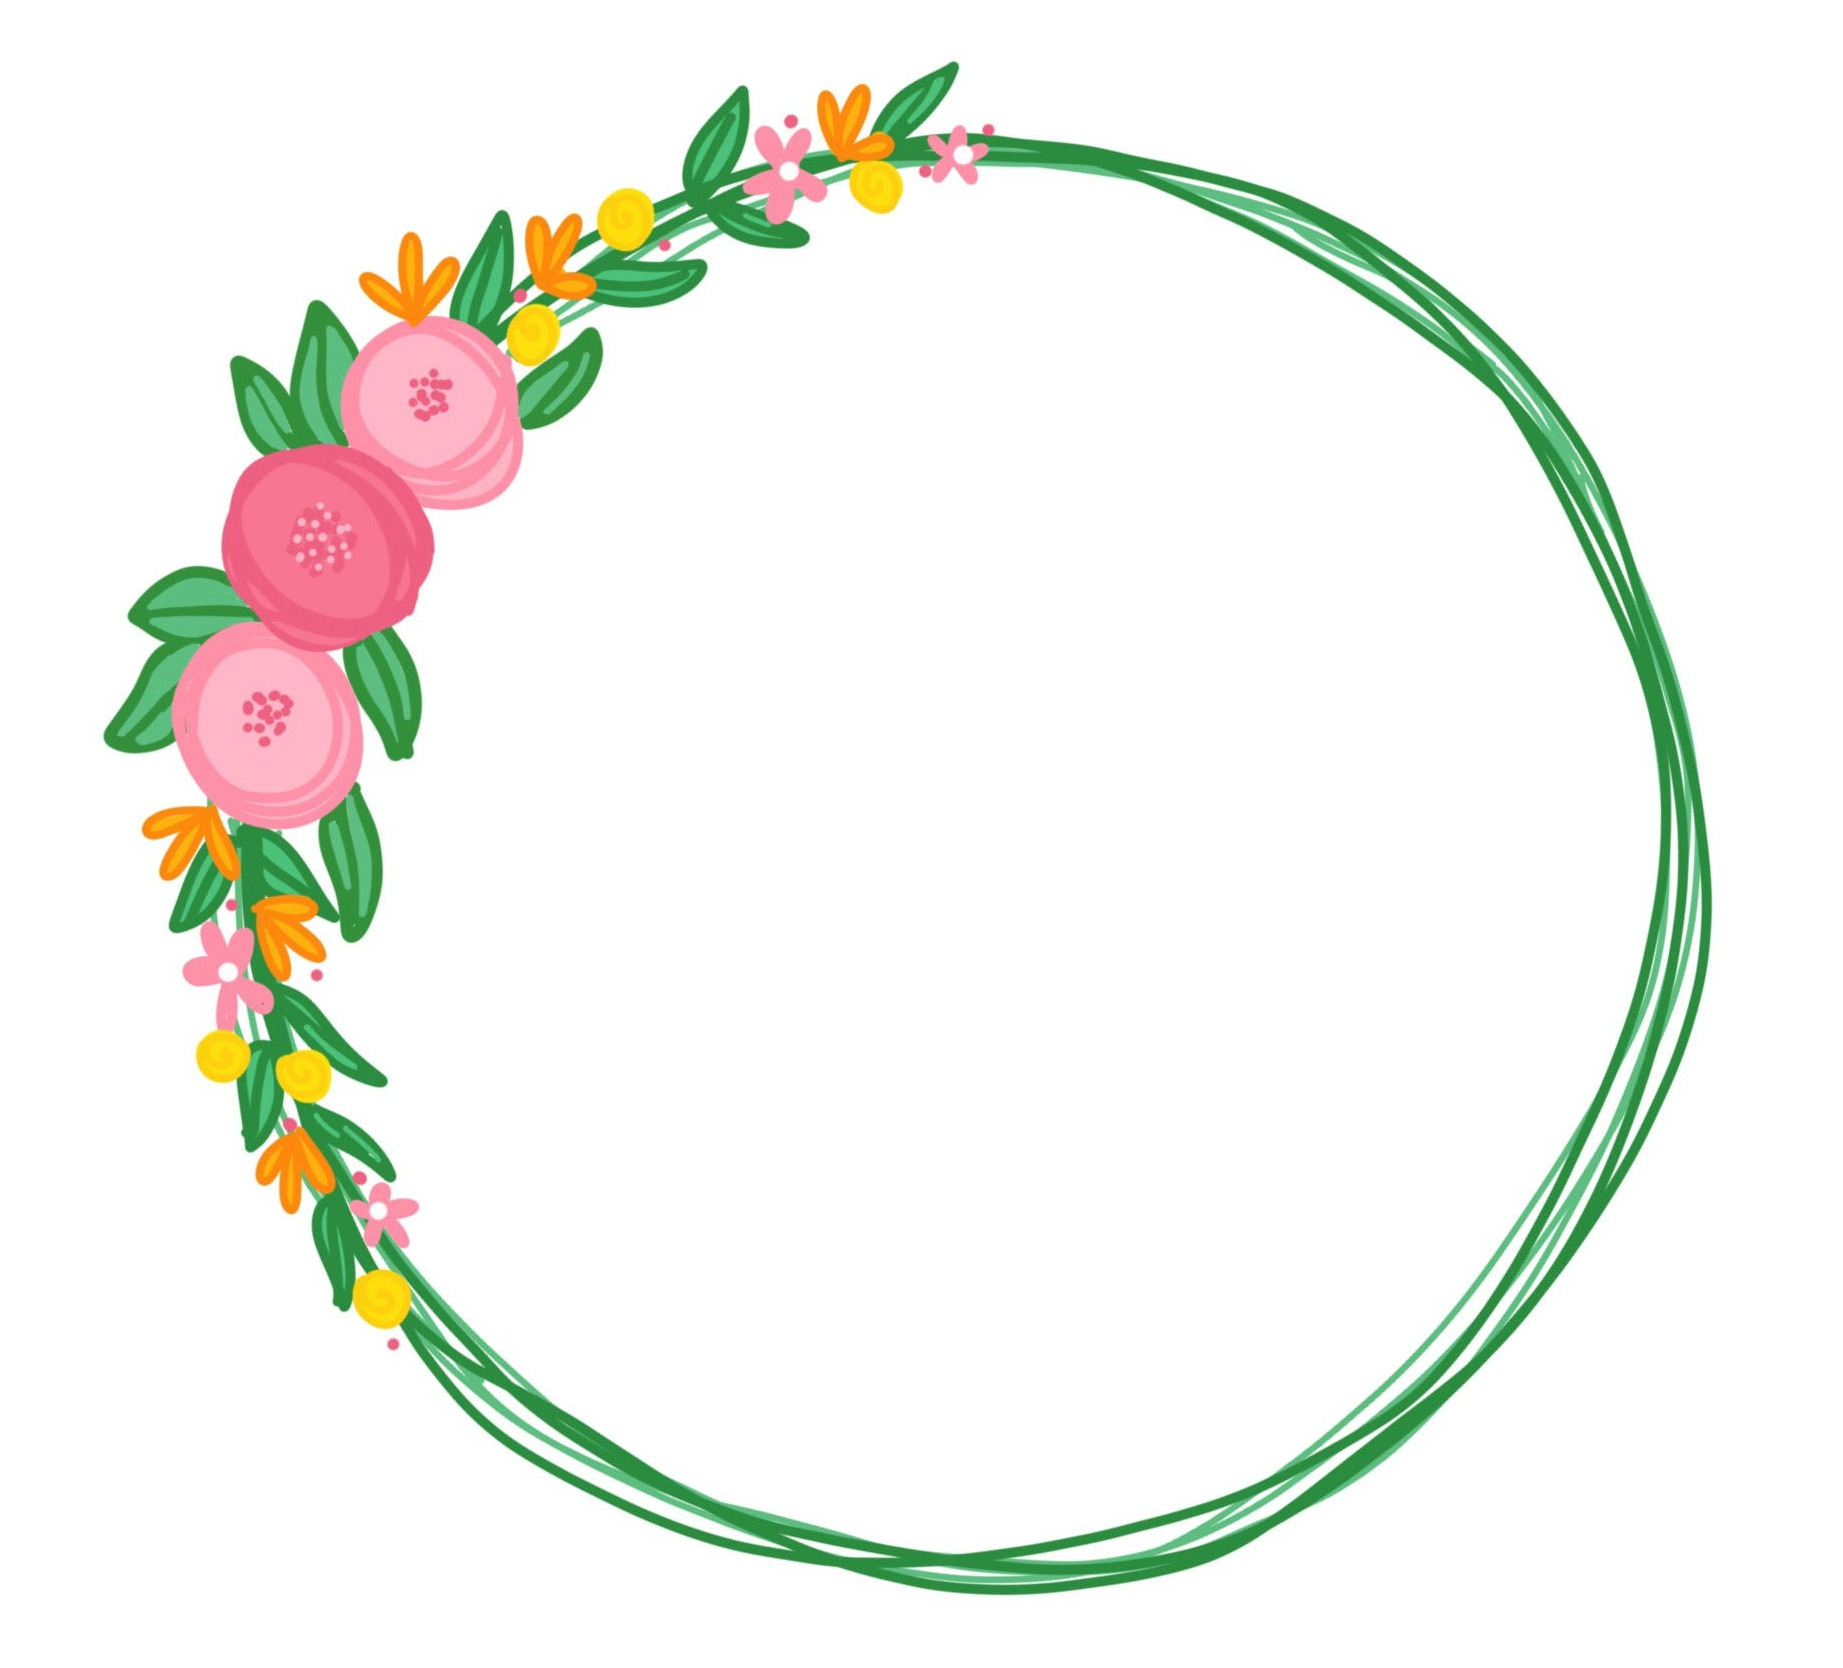 Hand Drawn Floral Wreath